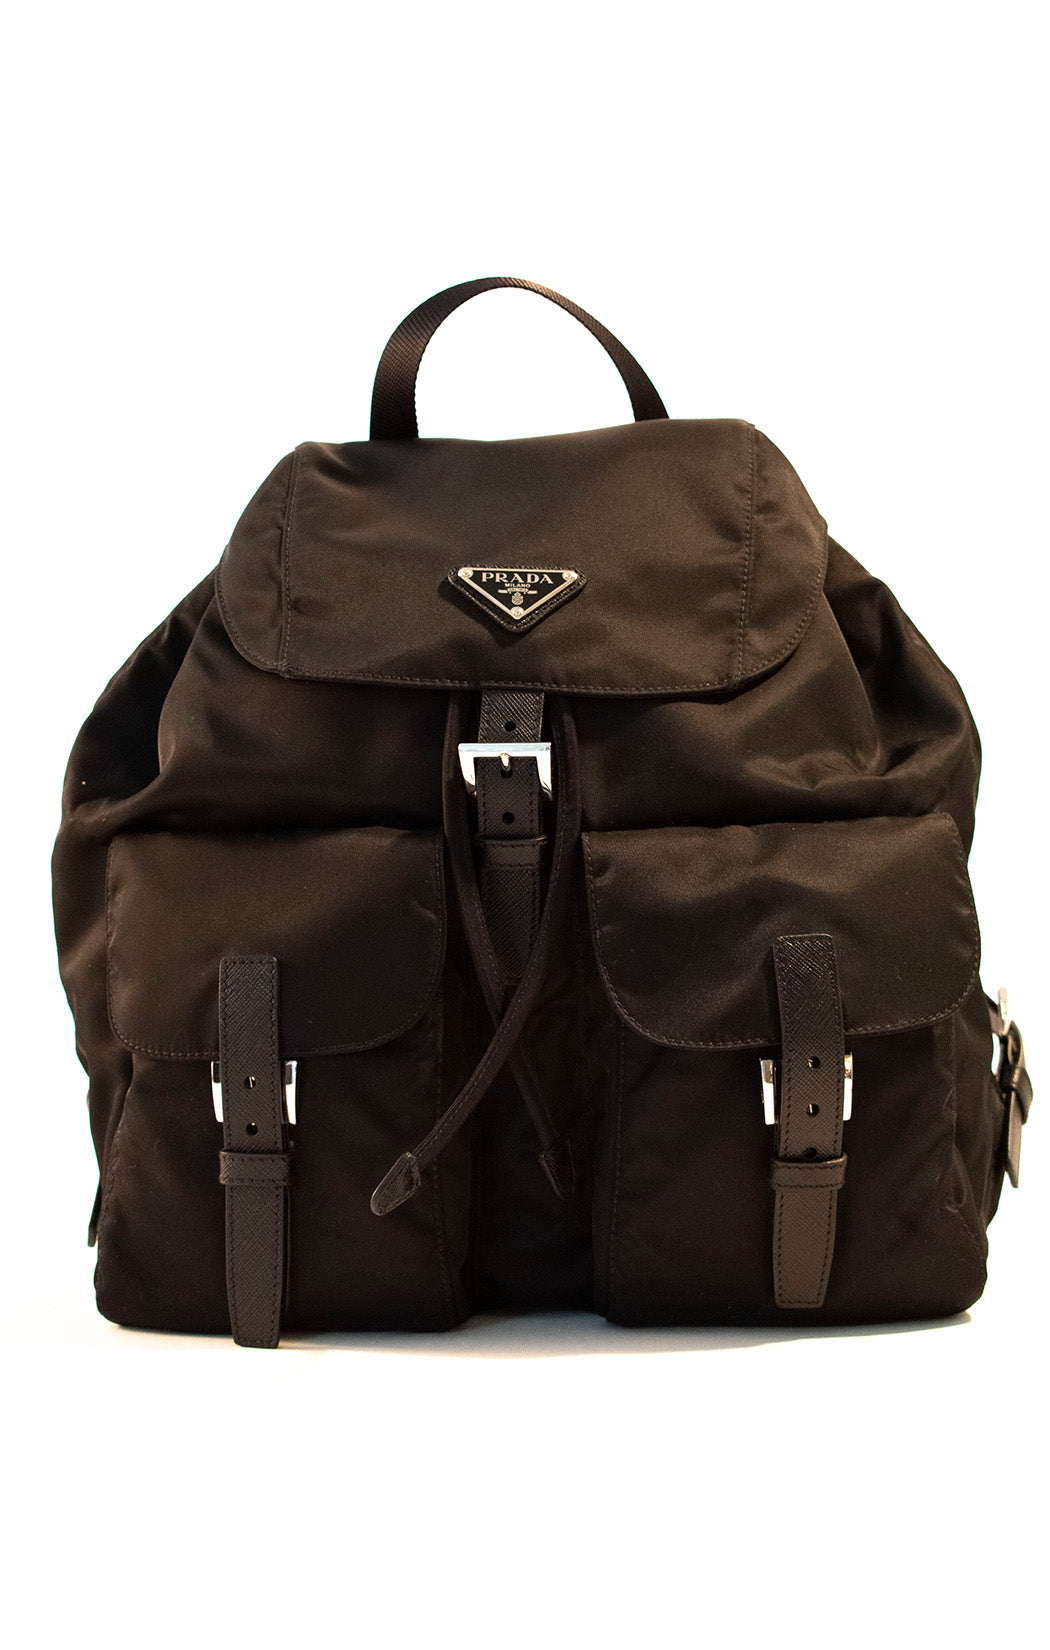 "Front view of PRADA Backpack Size: 13"" H, 11"" W, 6.5"" D"